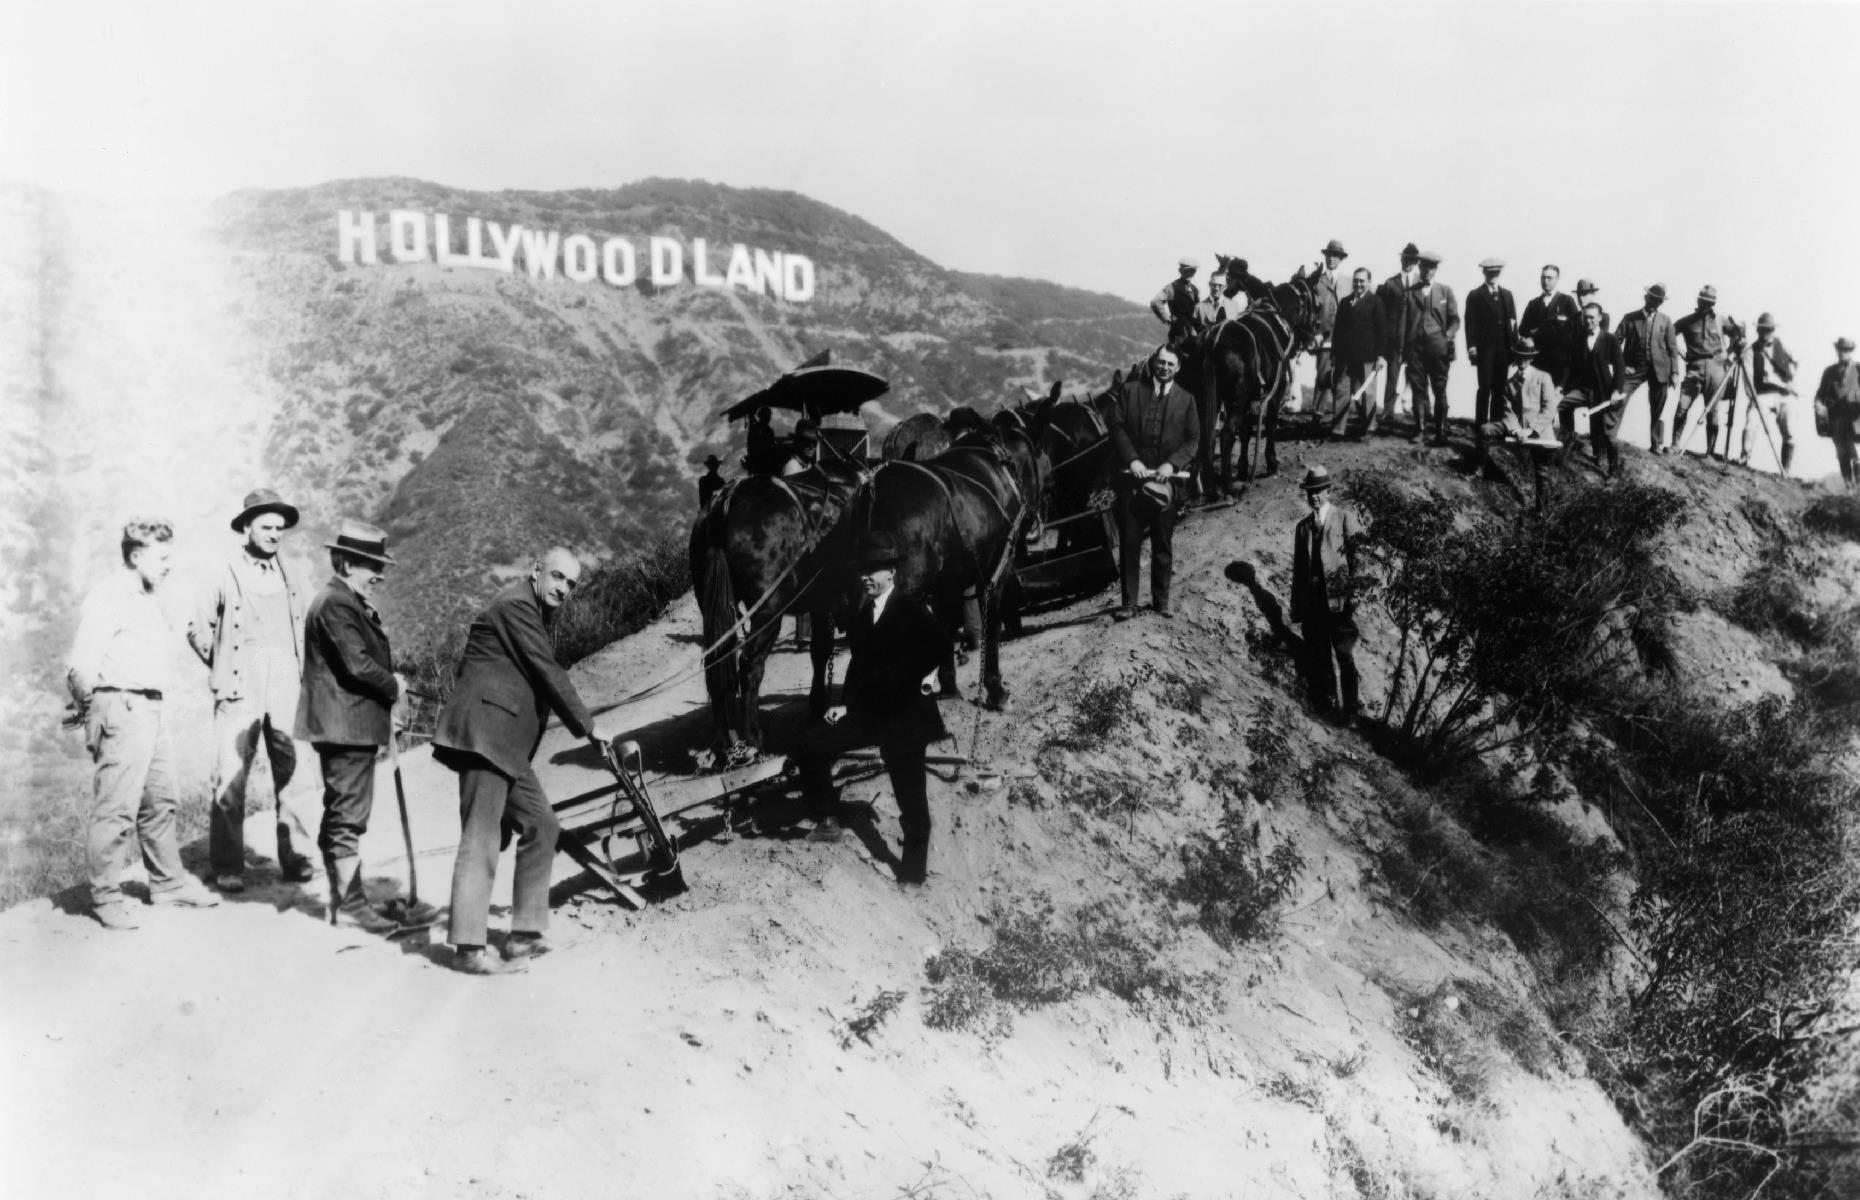 """Slide 46 of 47: The huge Hollywood Sign, standing high in the Hollywood Hills, is a familiar sight to tourists and Angelinos. It didn't always look as it does today, though. Originally an advert for a new housing development, it was erected in 1923 and read """"Hollywoodland"""". This photo shows a group of surveyors and builders for the new estate posing beneath the sign around 1925."""